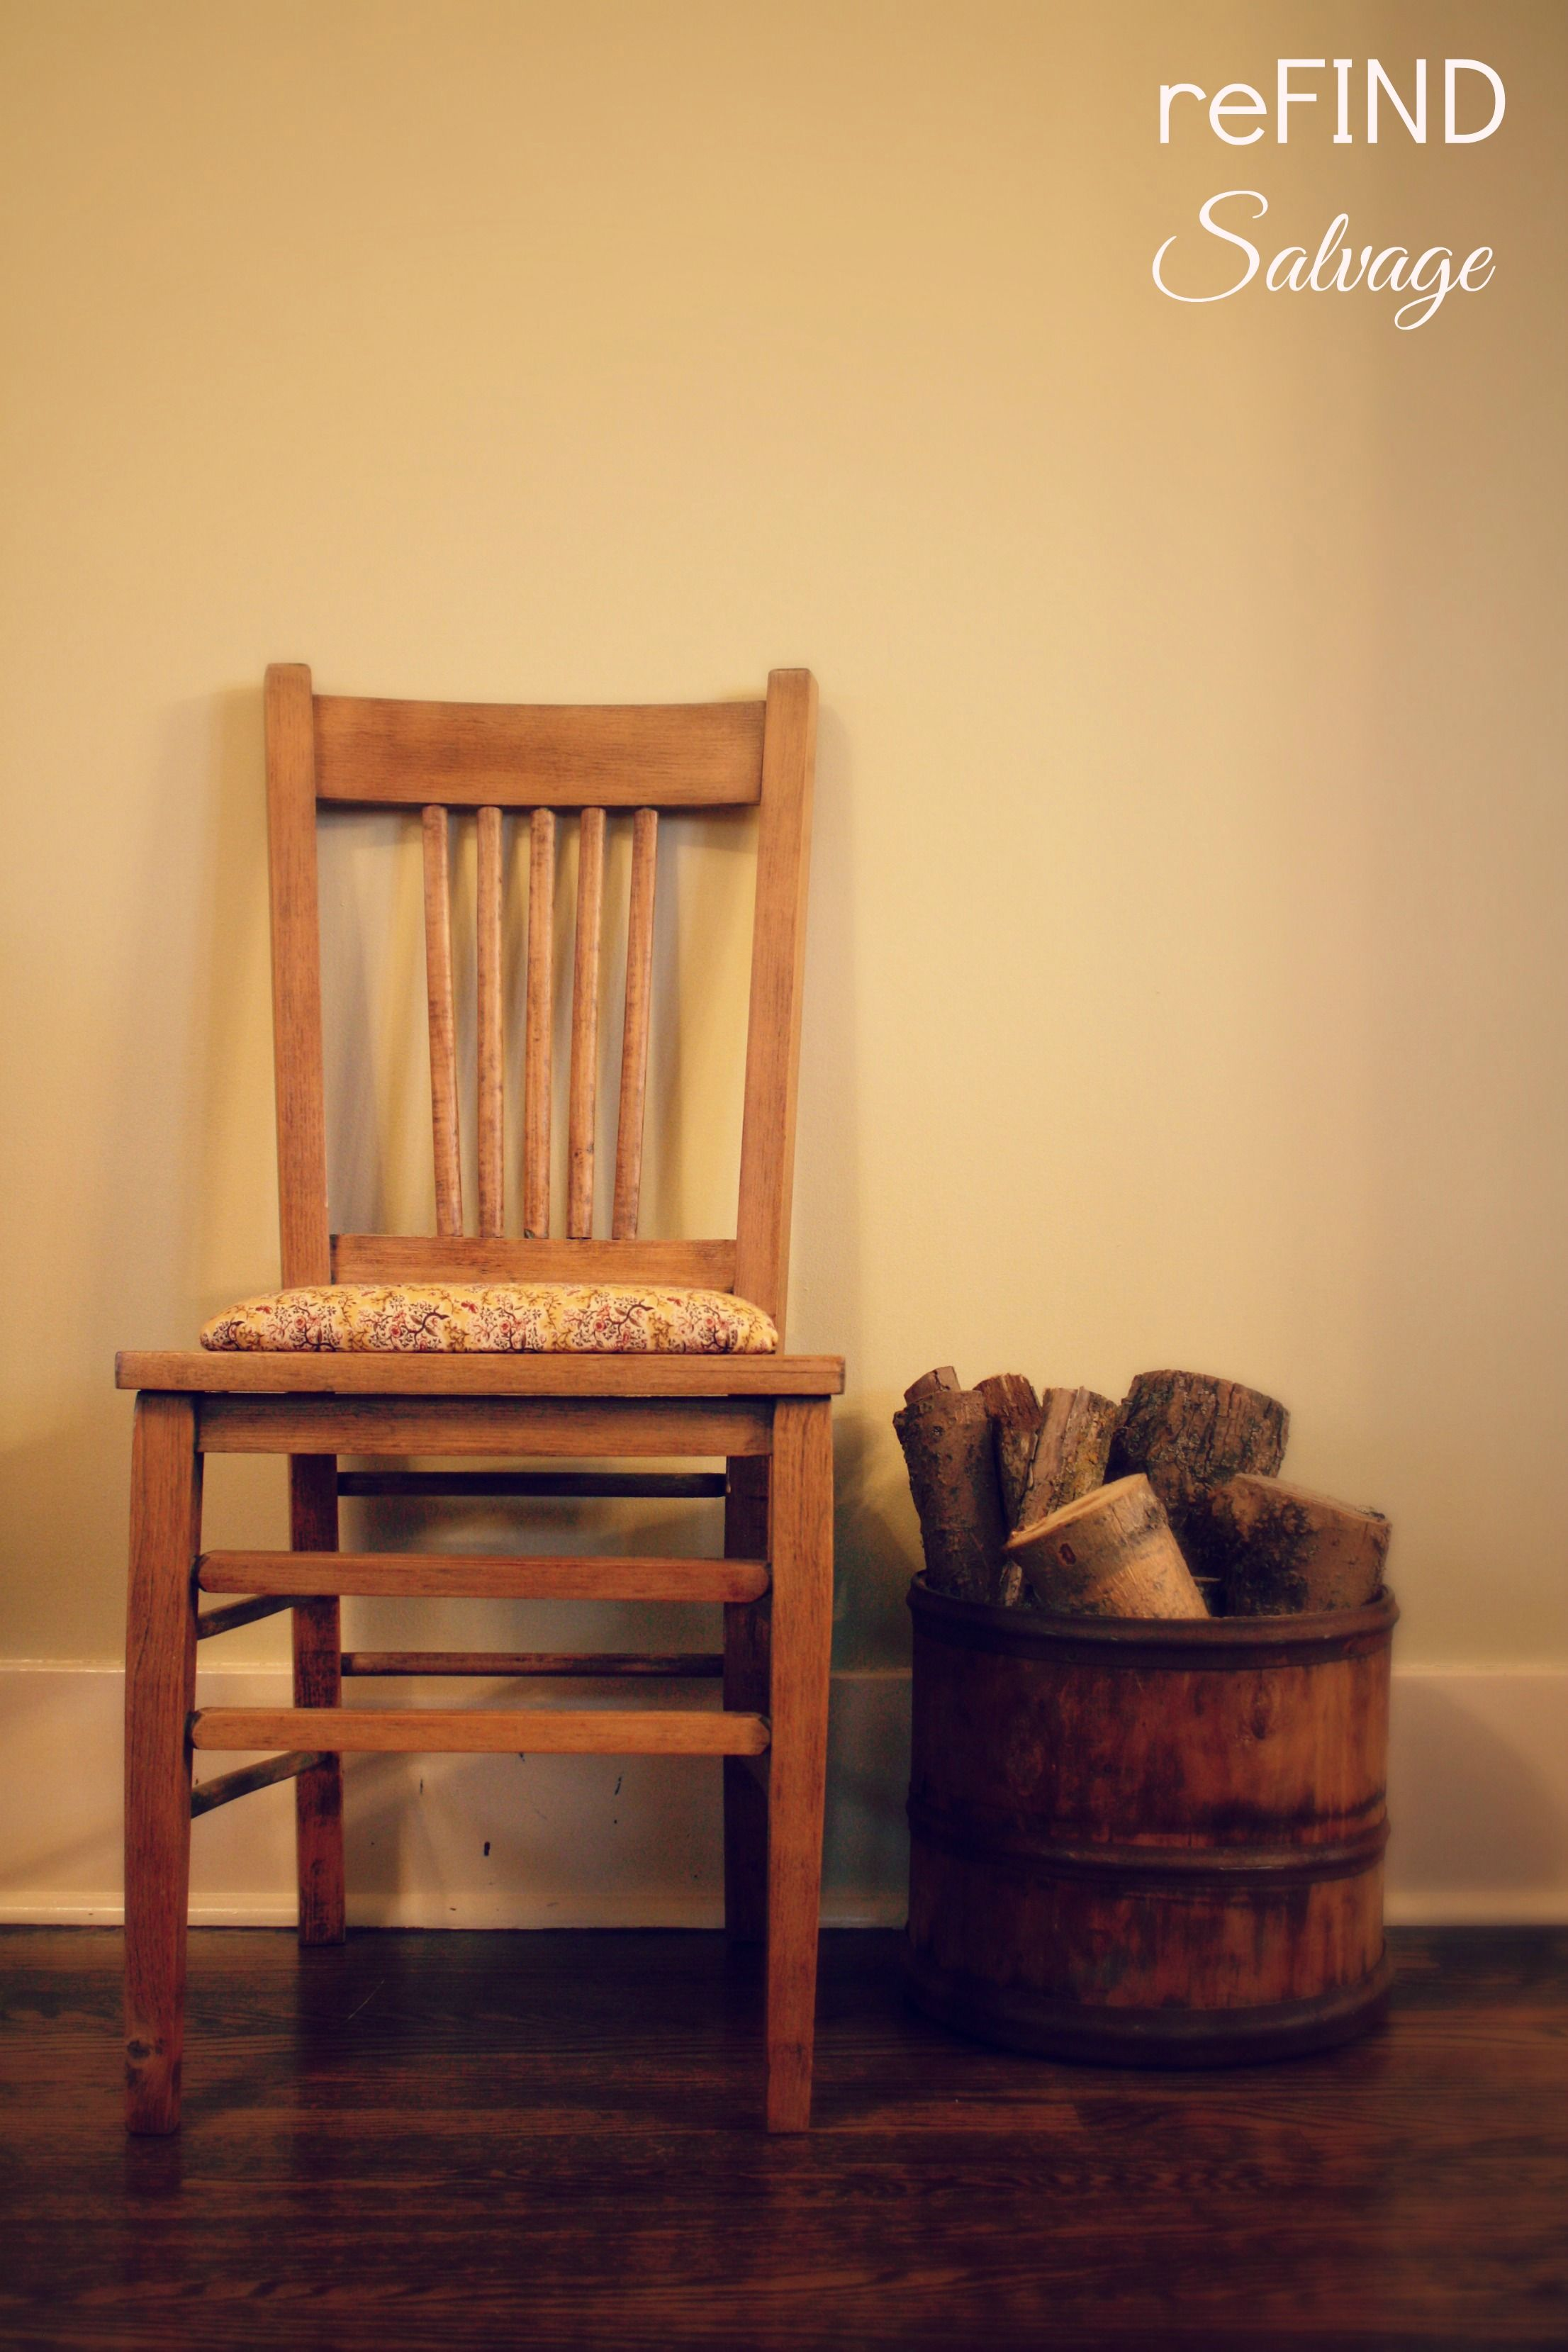 Reupholstered farmhouse chair rustic naturally distressed solid